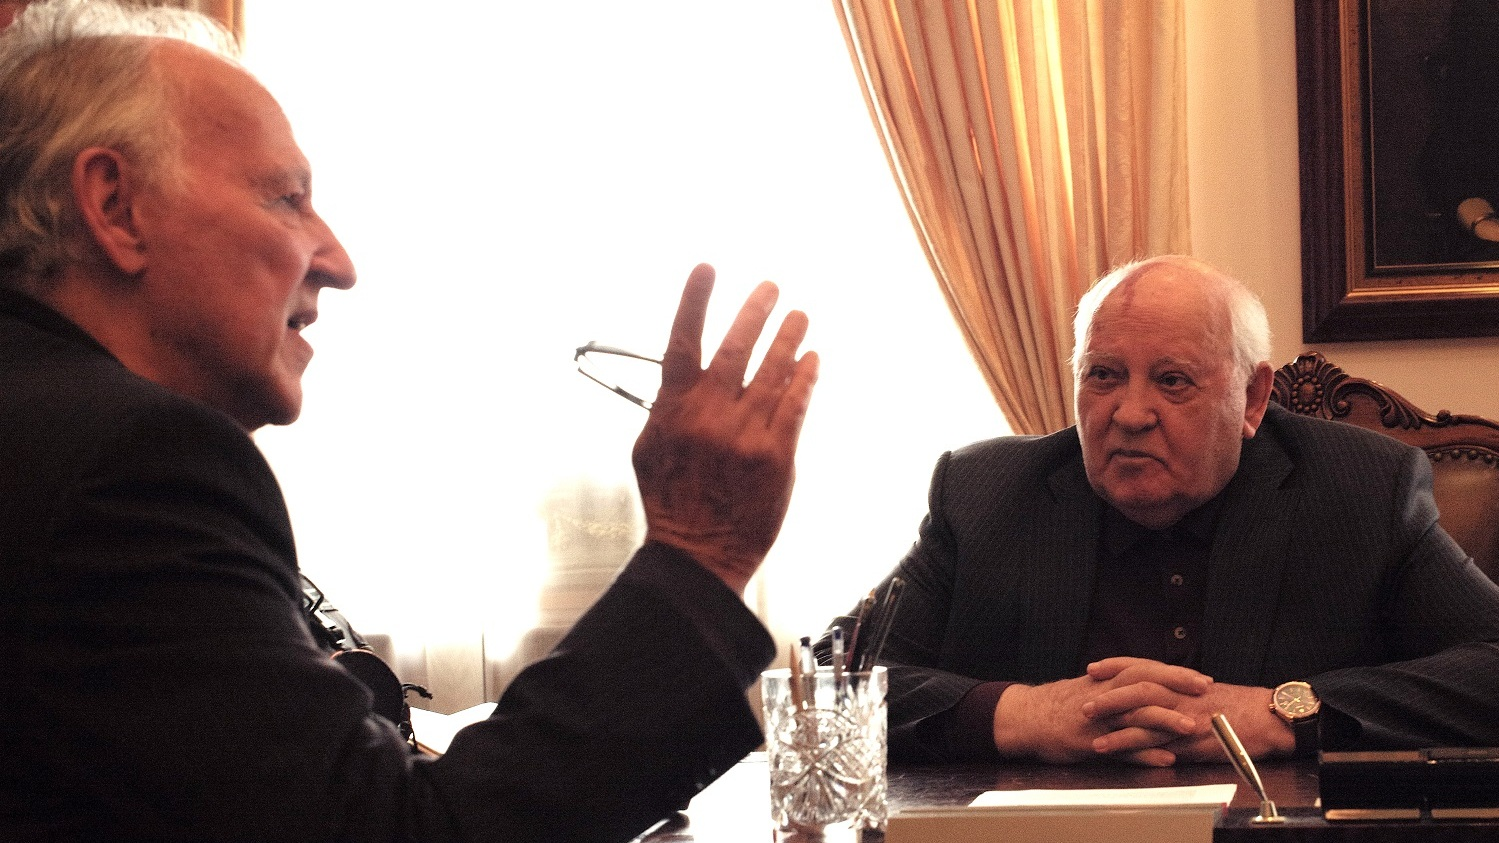 Meeting Gorbachev - Dogwoof Documentary